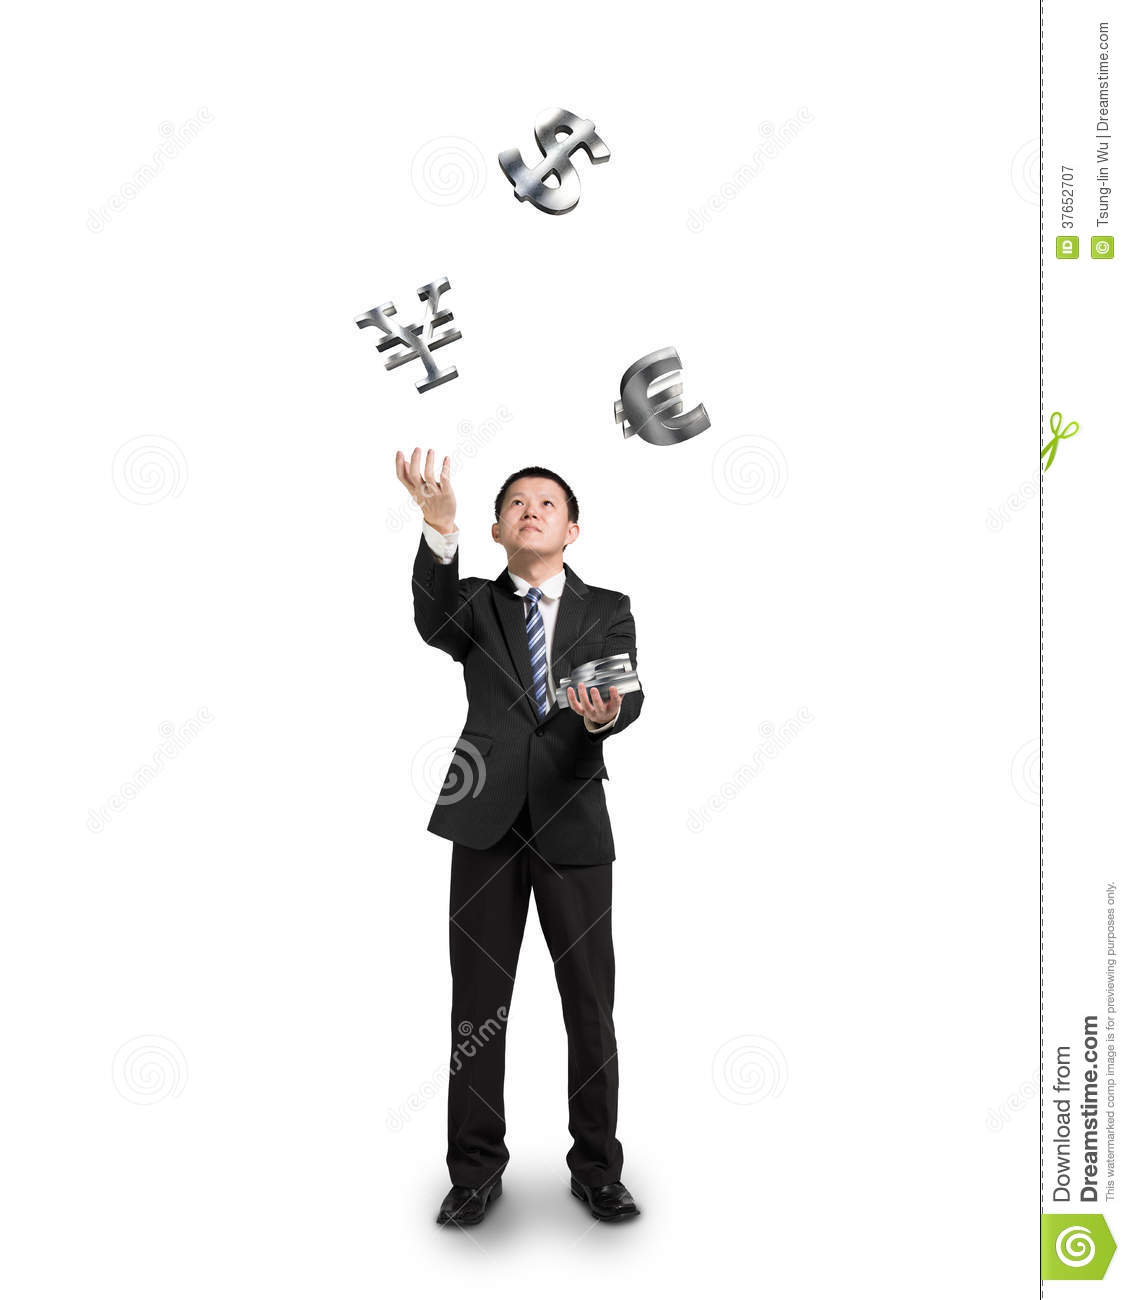 Businessman throwing and catching sliver money symbols